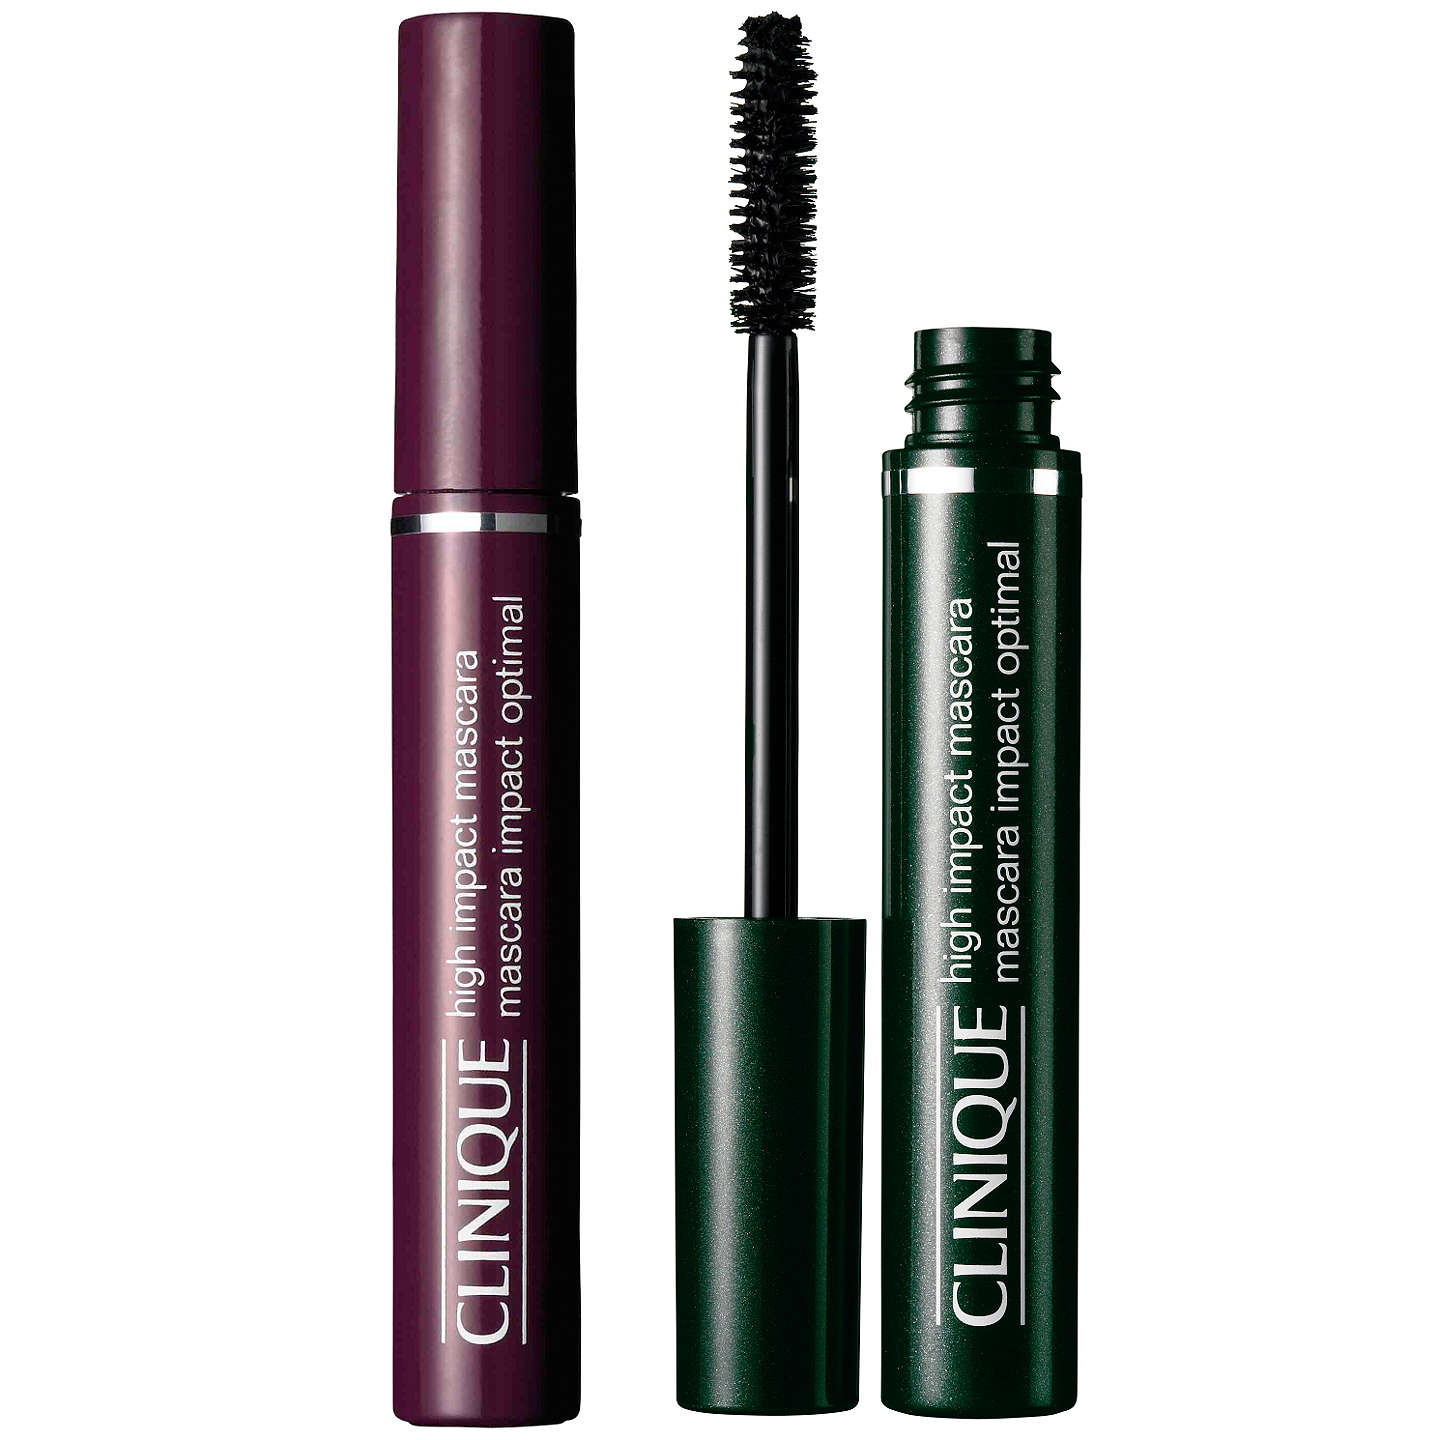 BuyClinique High Impact Mascara, Black Online at johnlewis.com